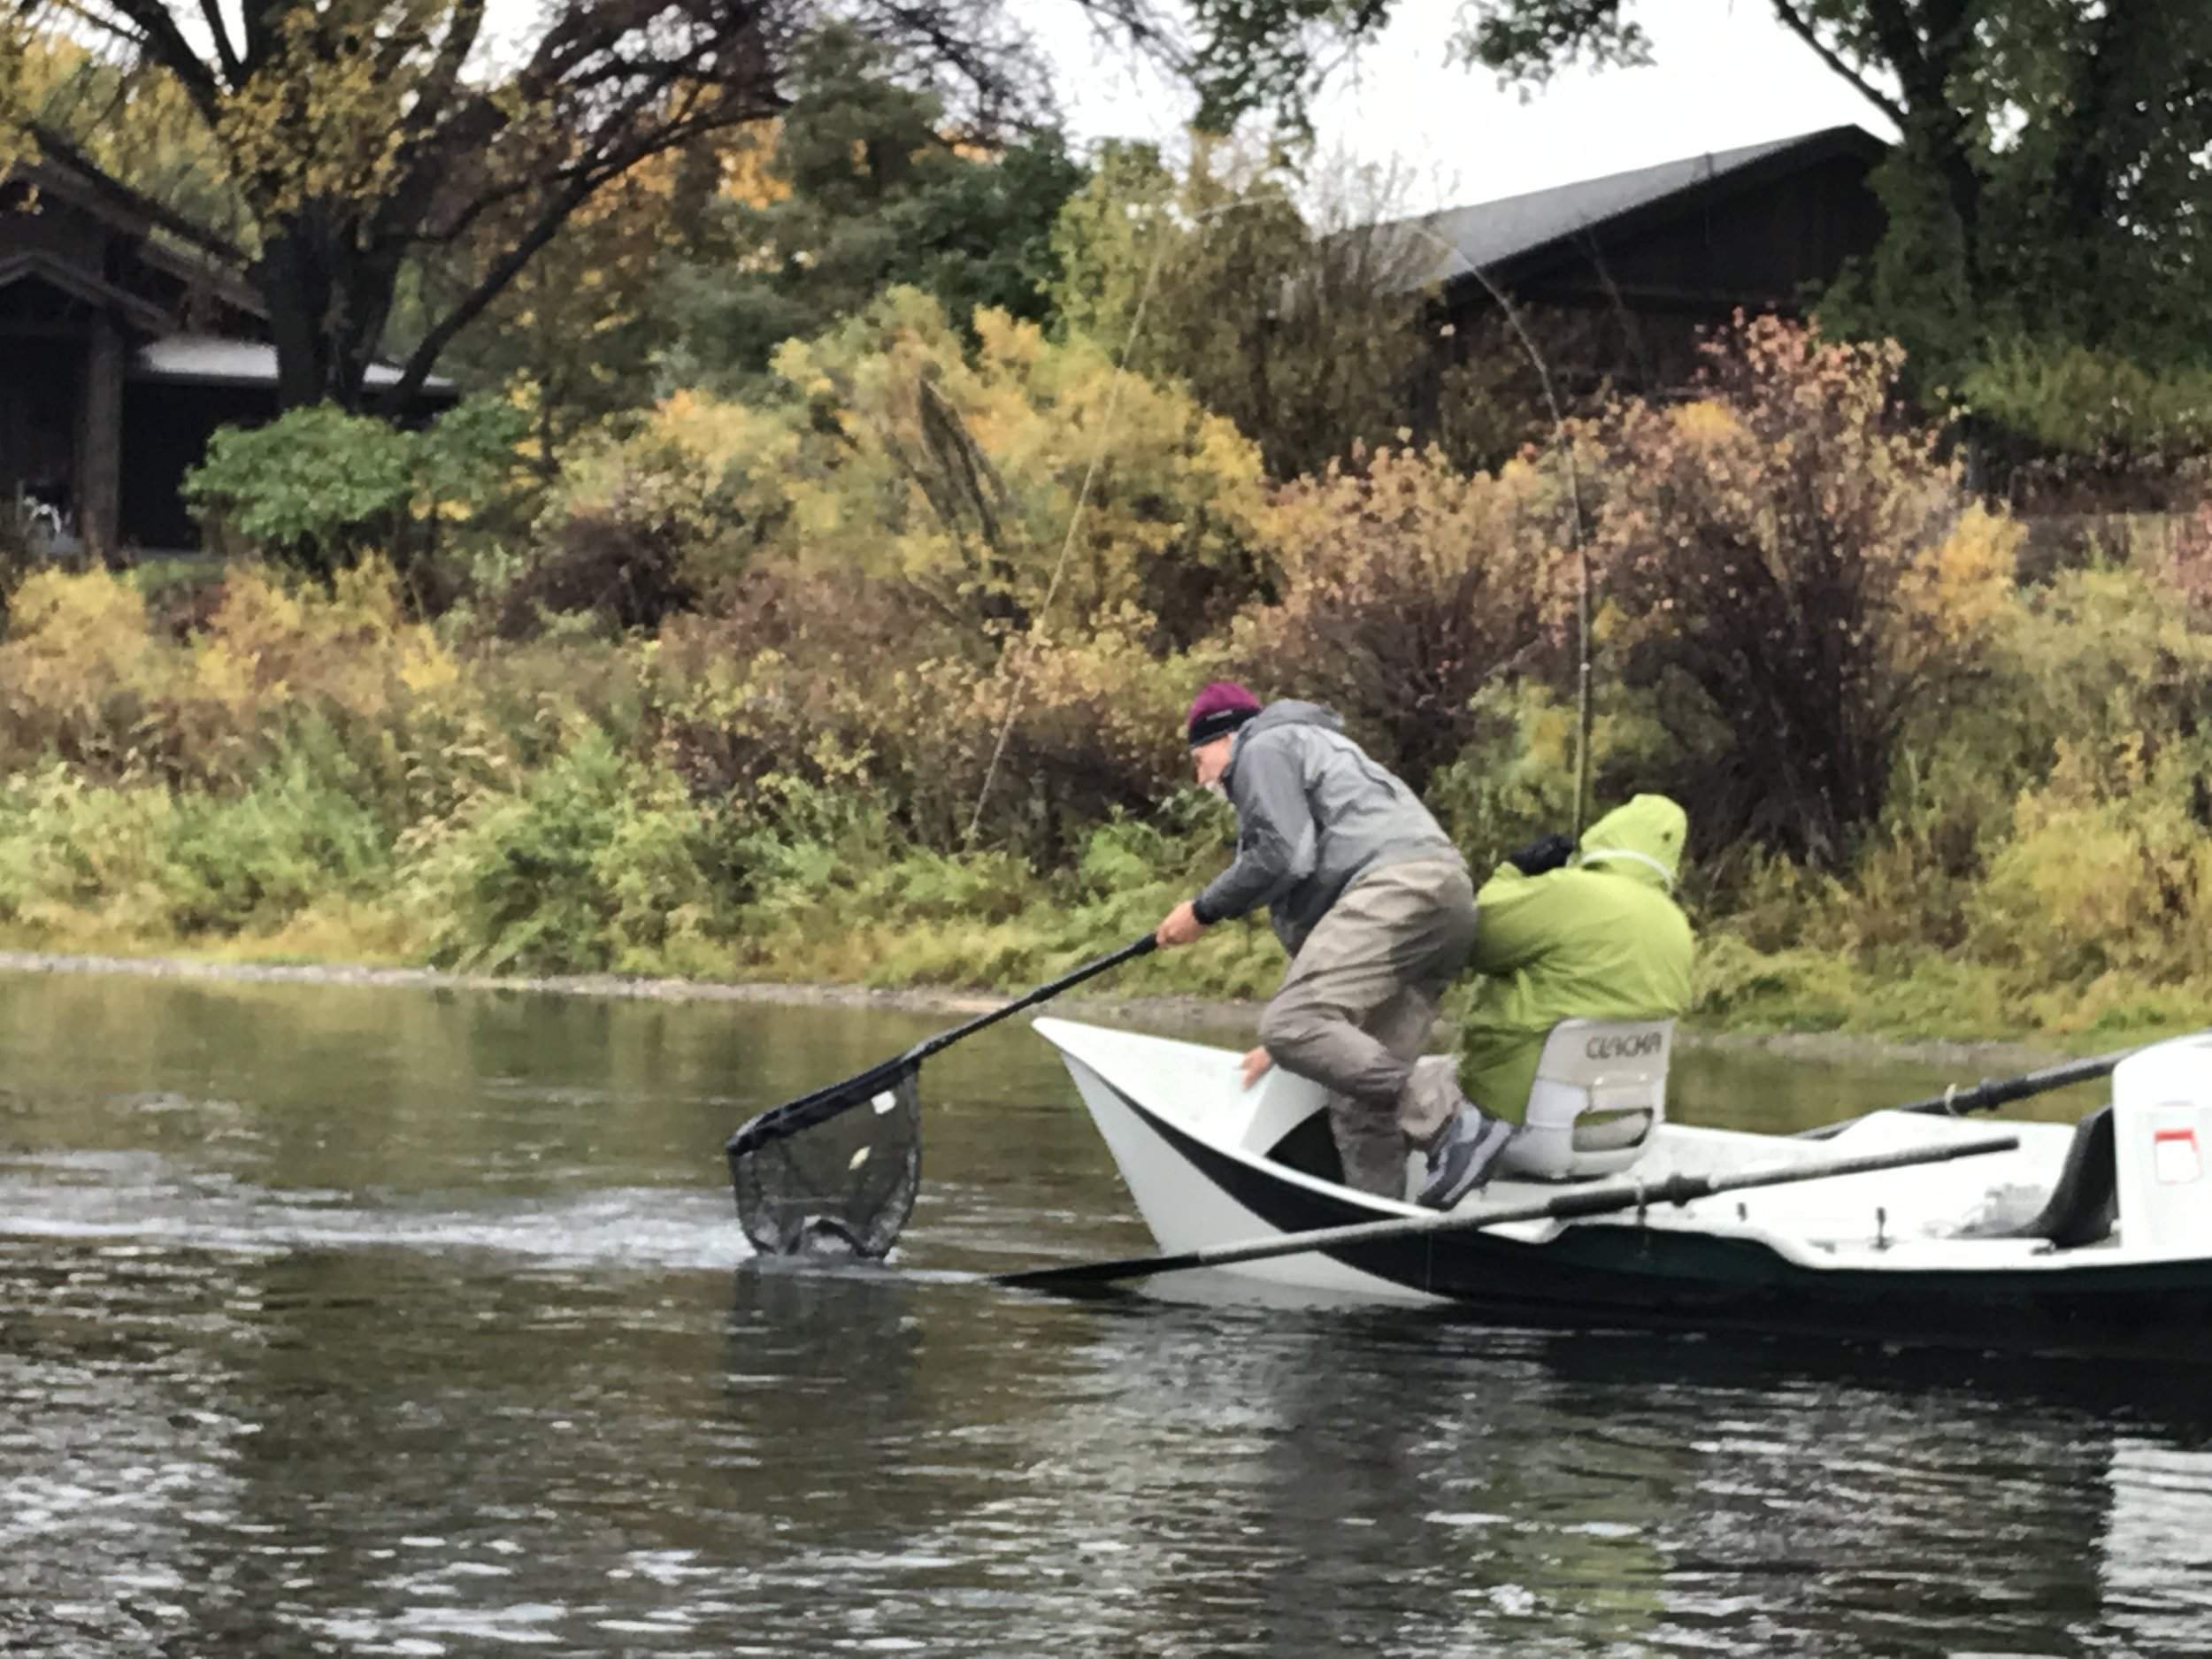 Netting another trout on the Missouri River